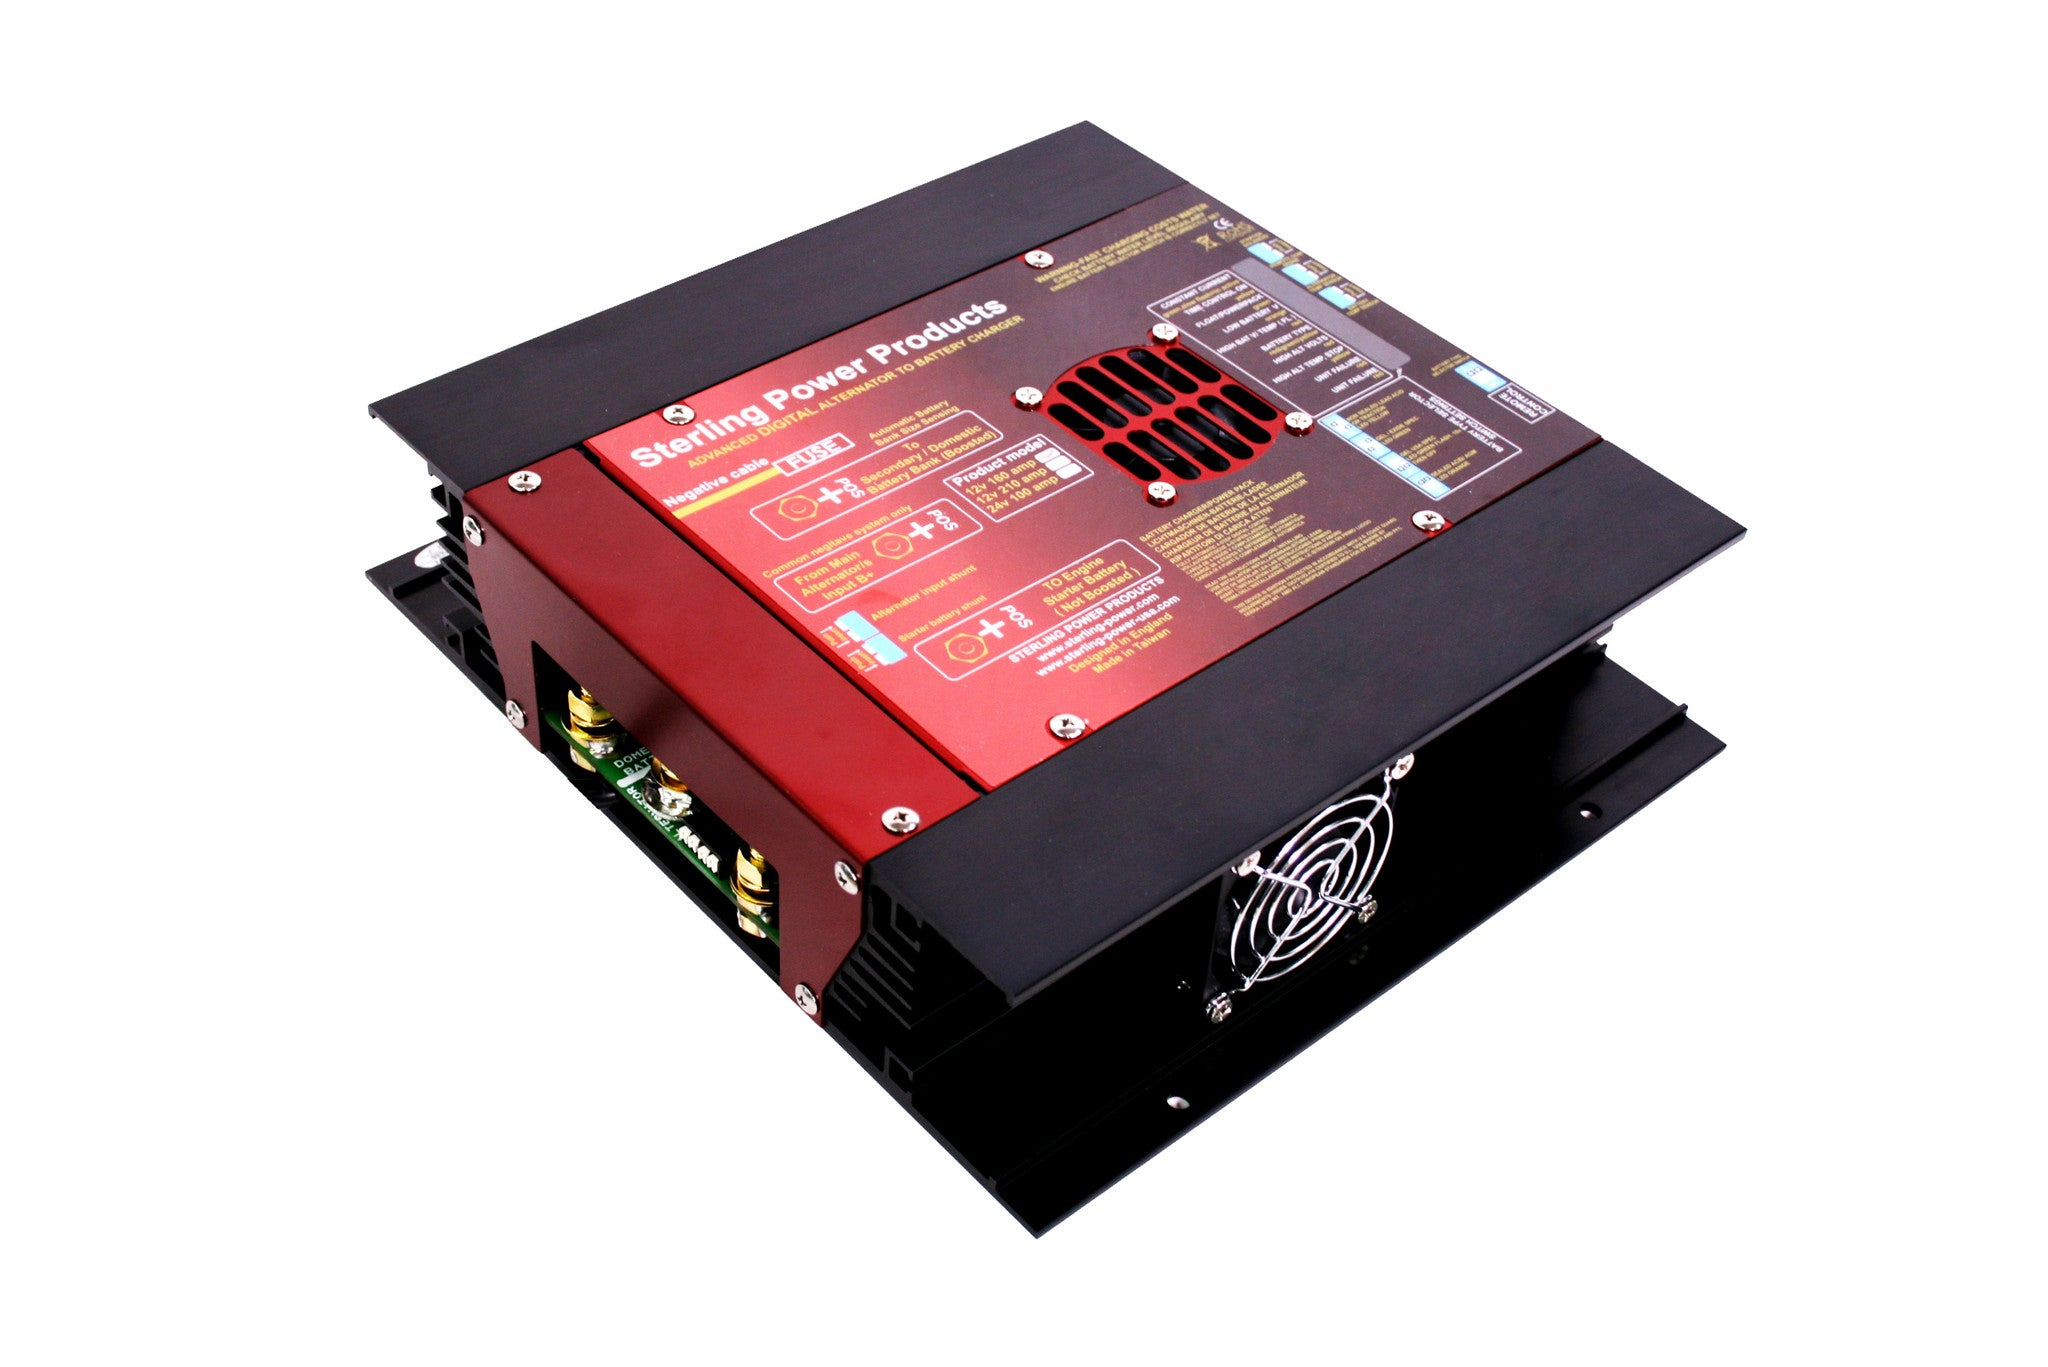 alternator to battery chargers up to 400a sterling power productsBattery Charger Or Power Supply 14 Volt 4 Ampere B2b Electronic #18